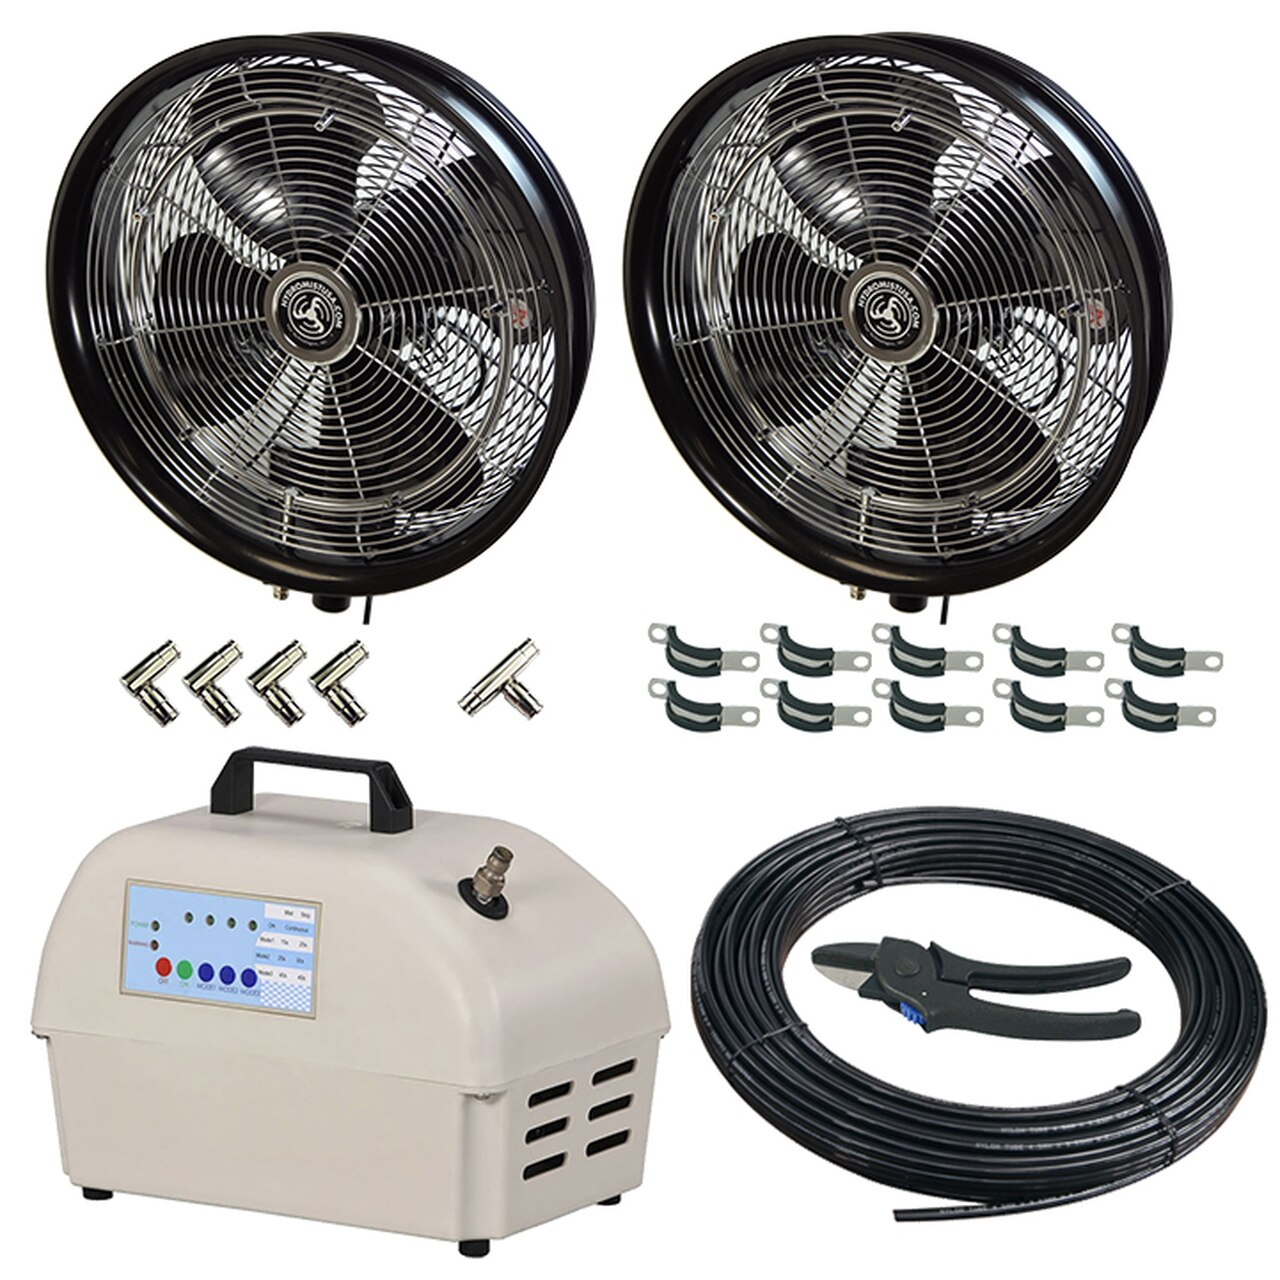 2 misting fan package (black) along with 1 nylon hose cutter, 4- elbow connectors, 10 hose clamps , 1 Tee Coupler pump,